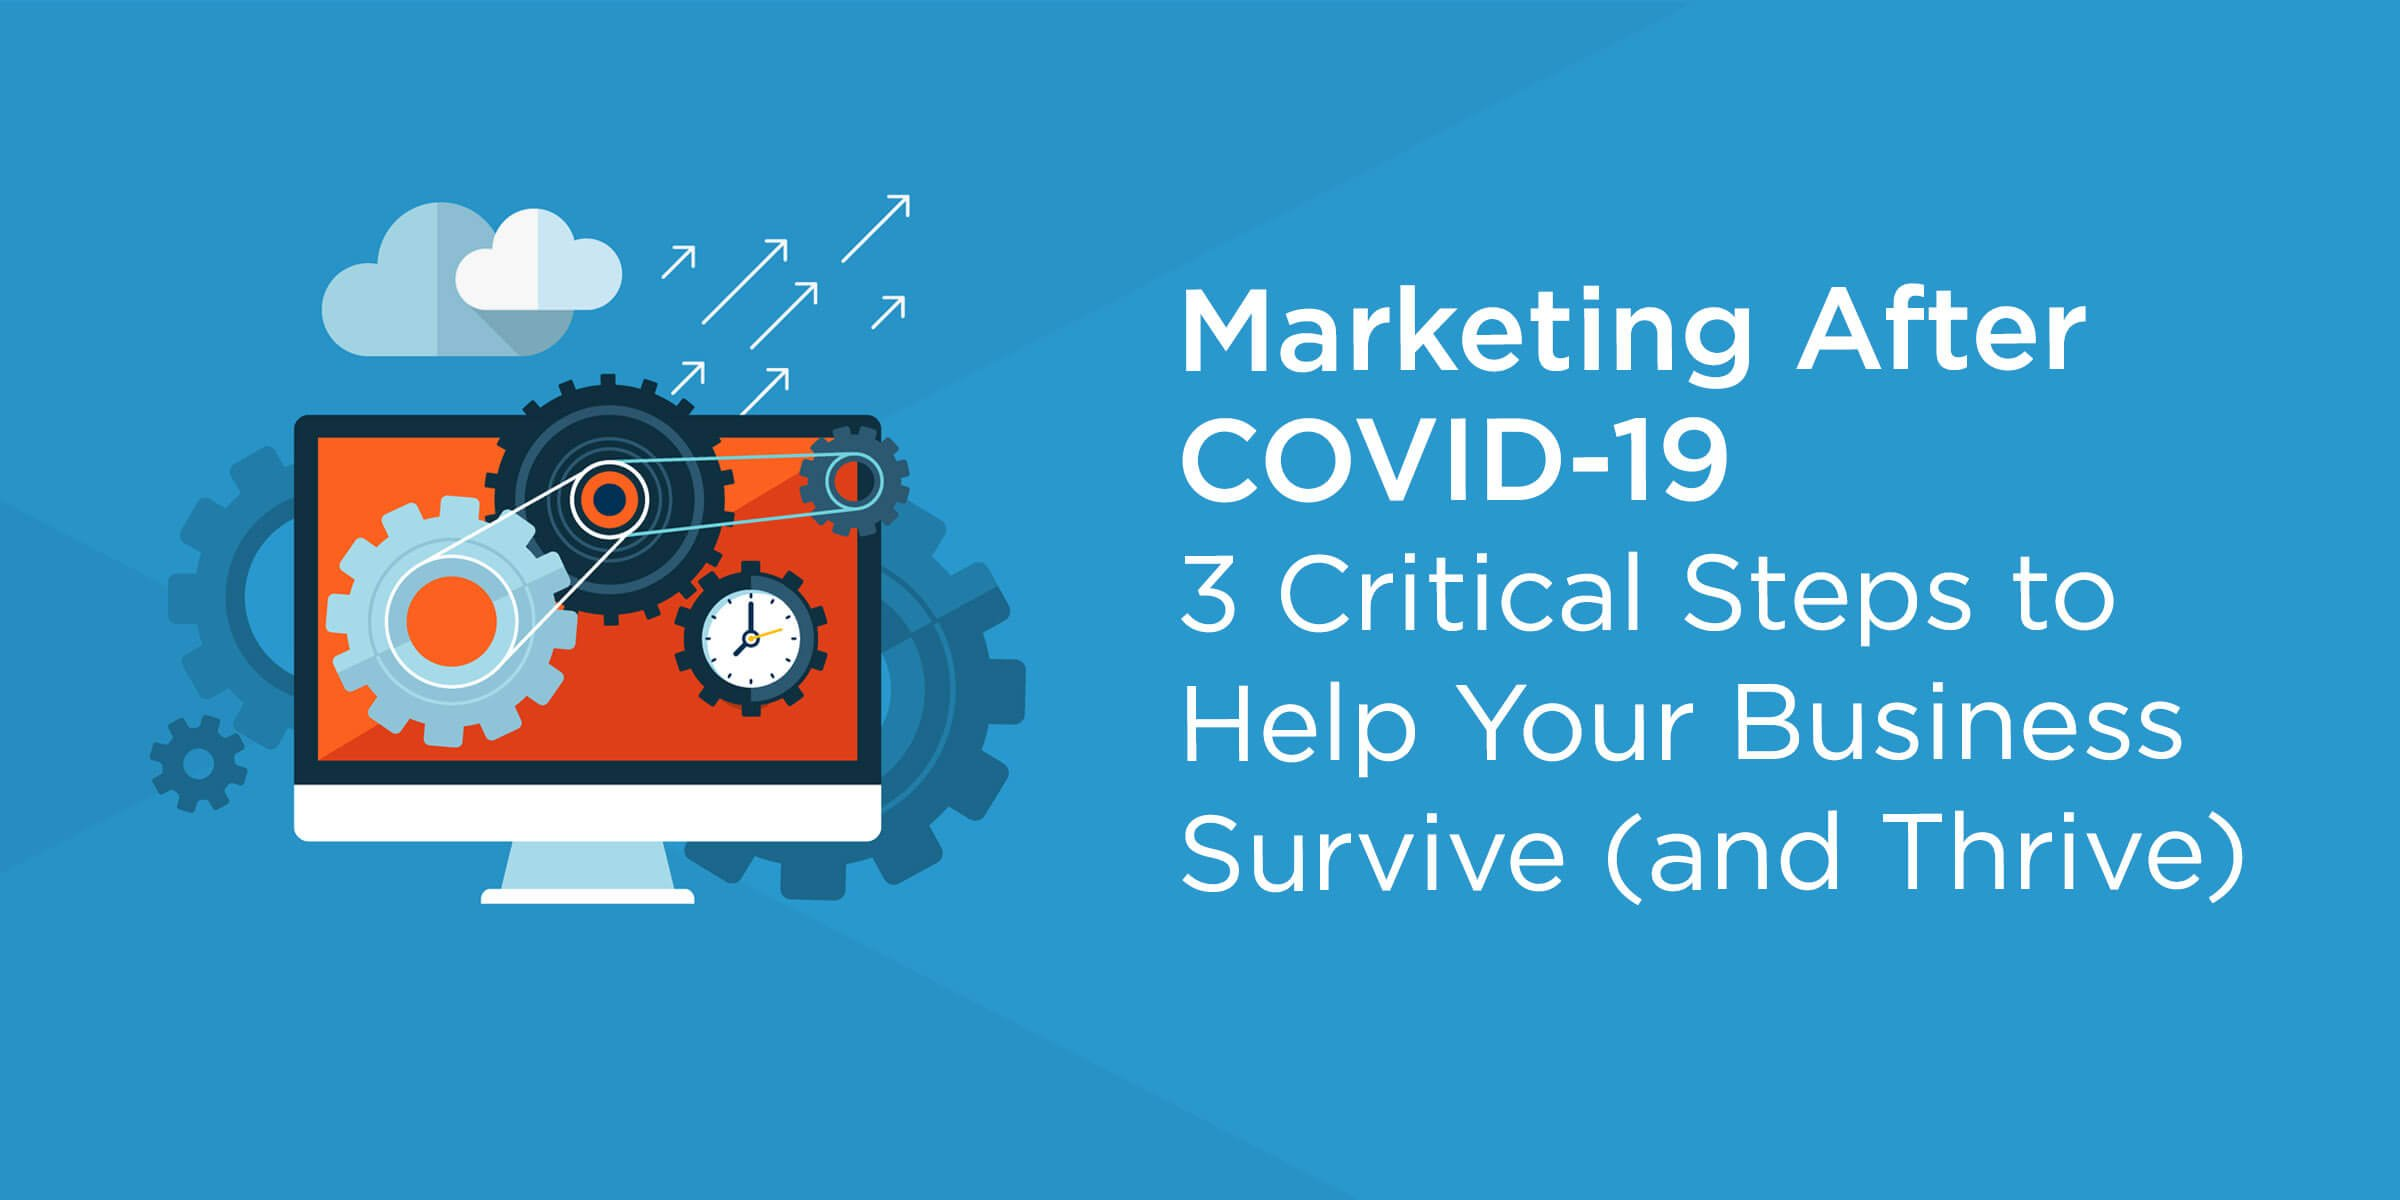 Marketing After COVID-19 – 3 Critical Steps to Help Your Business Survive – McBreen Marketing